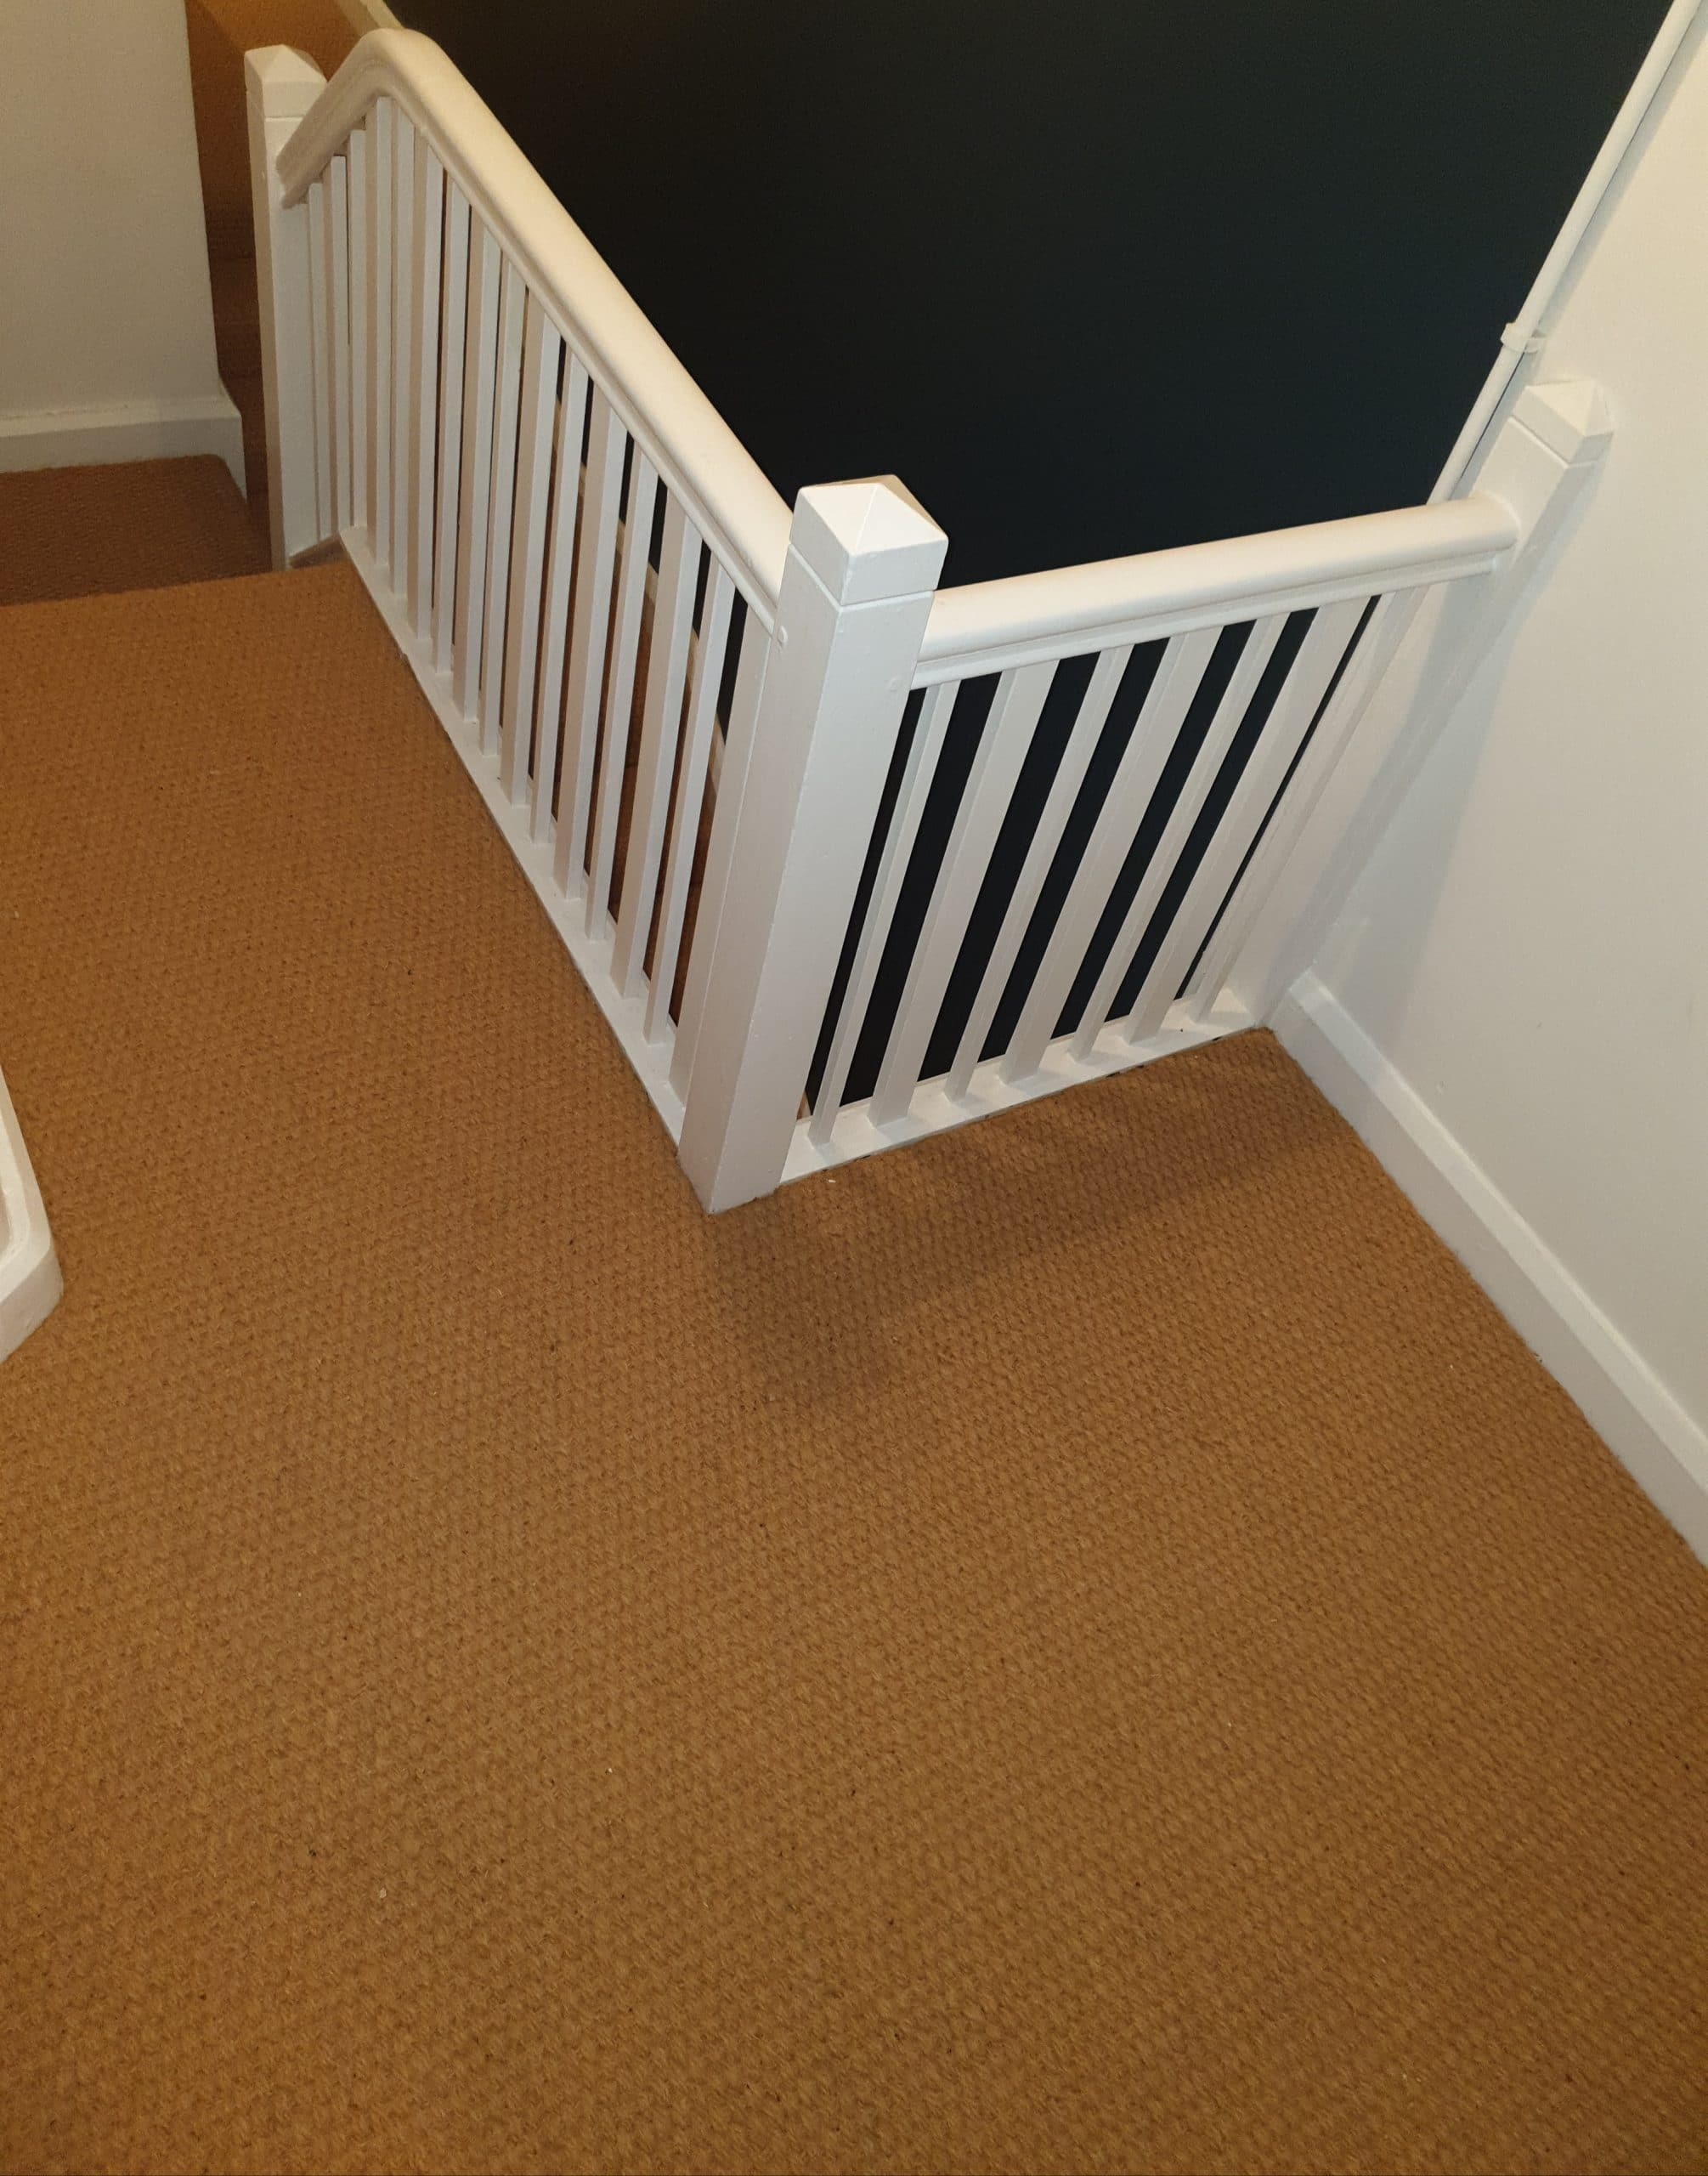 Buying cost of natural stair landing carpet Cheshire